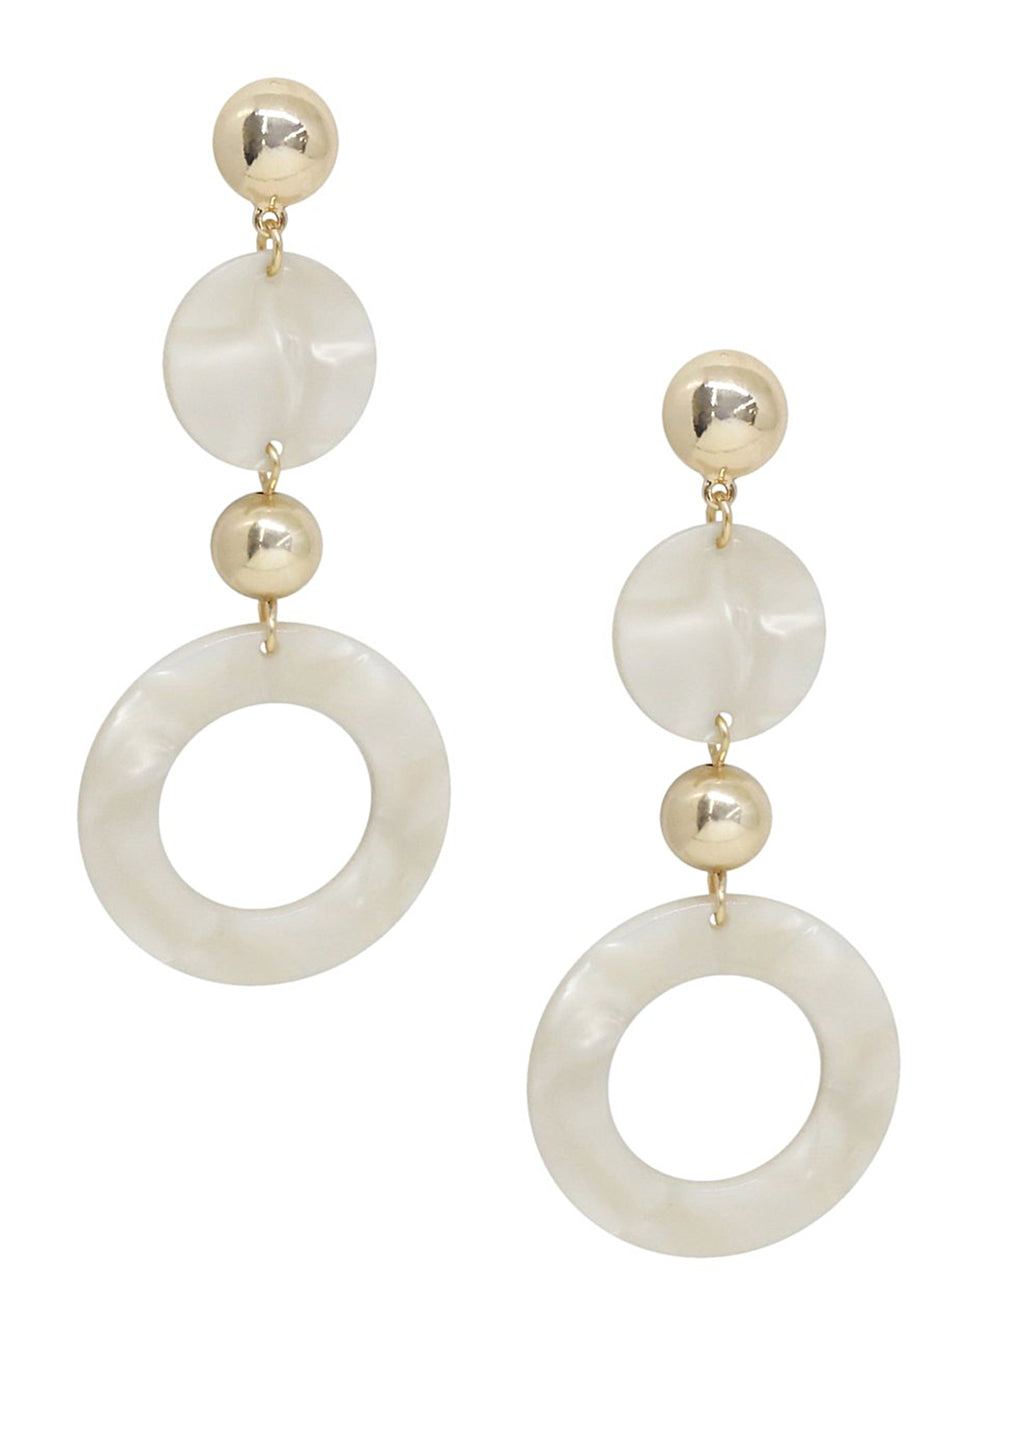 ETTIKA SOFT FOCUS RESIN CIRCLE DROP EARRINGS